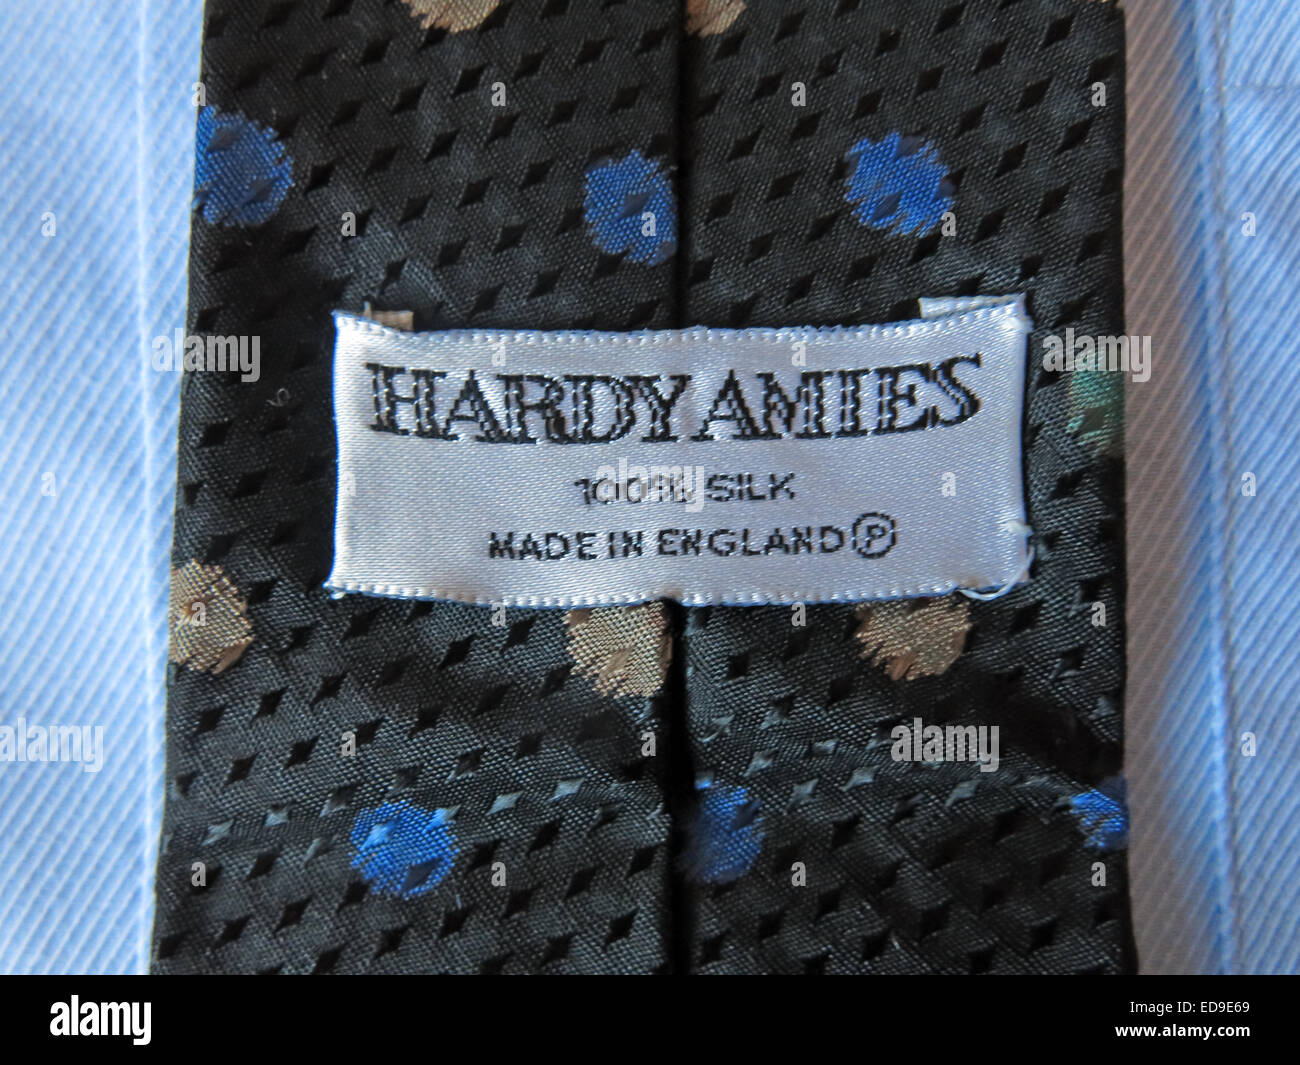 man mans 2nd hand second secondhand back front patterned,retro,selection,on,a,shirt,pattern,patterned,weave,weaving,material,fashion,business,office,apparel,US,English,fashionable,fabric,colour,coloured,colored,label,slim,wide,kipper,designer,uniform,school,casual,cotton,polyester,1980s,Hardy,Amie,gotonysmith,close,up,close-up,macro,mode,moda,textile,Amies,100%,accessory,bow,business,businessman,cloth,clothes,clothing,collar,corporate,cravat,cute,design,designer,dress,elegance,elegant,fabric,fashion,fashionable,formal,garments,knot modern ascot tie,bow tie,bolo tie,zipper tie,cravat and clip-on tie